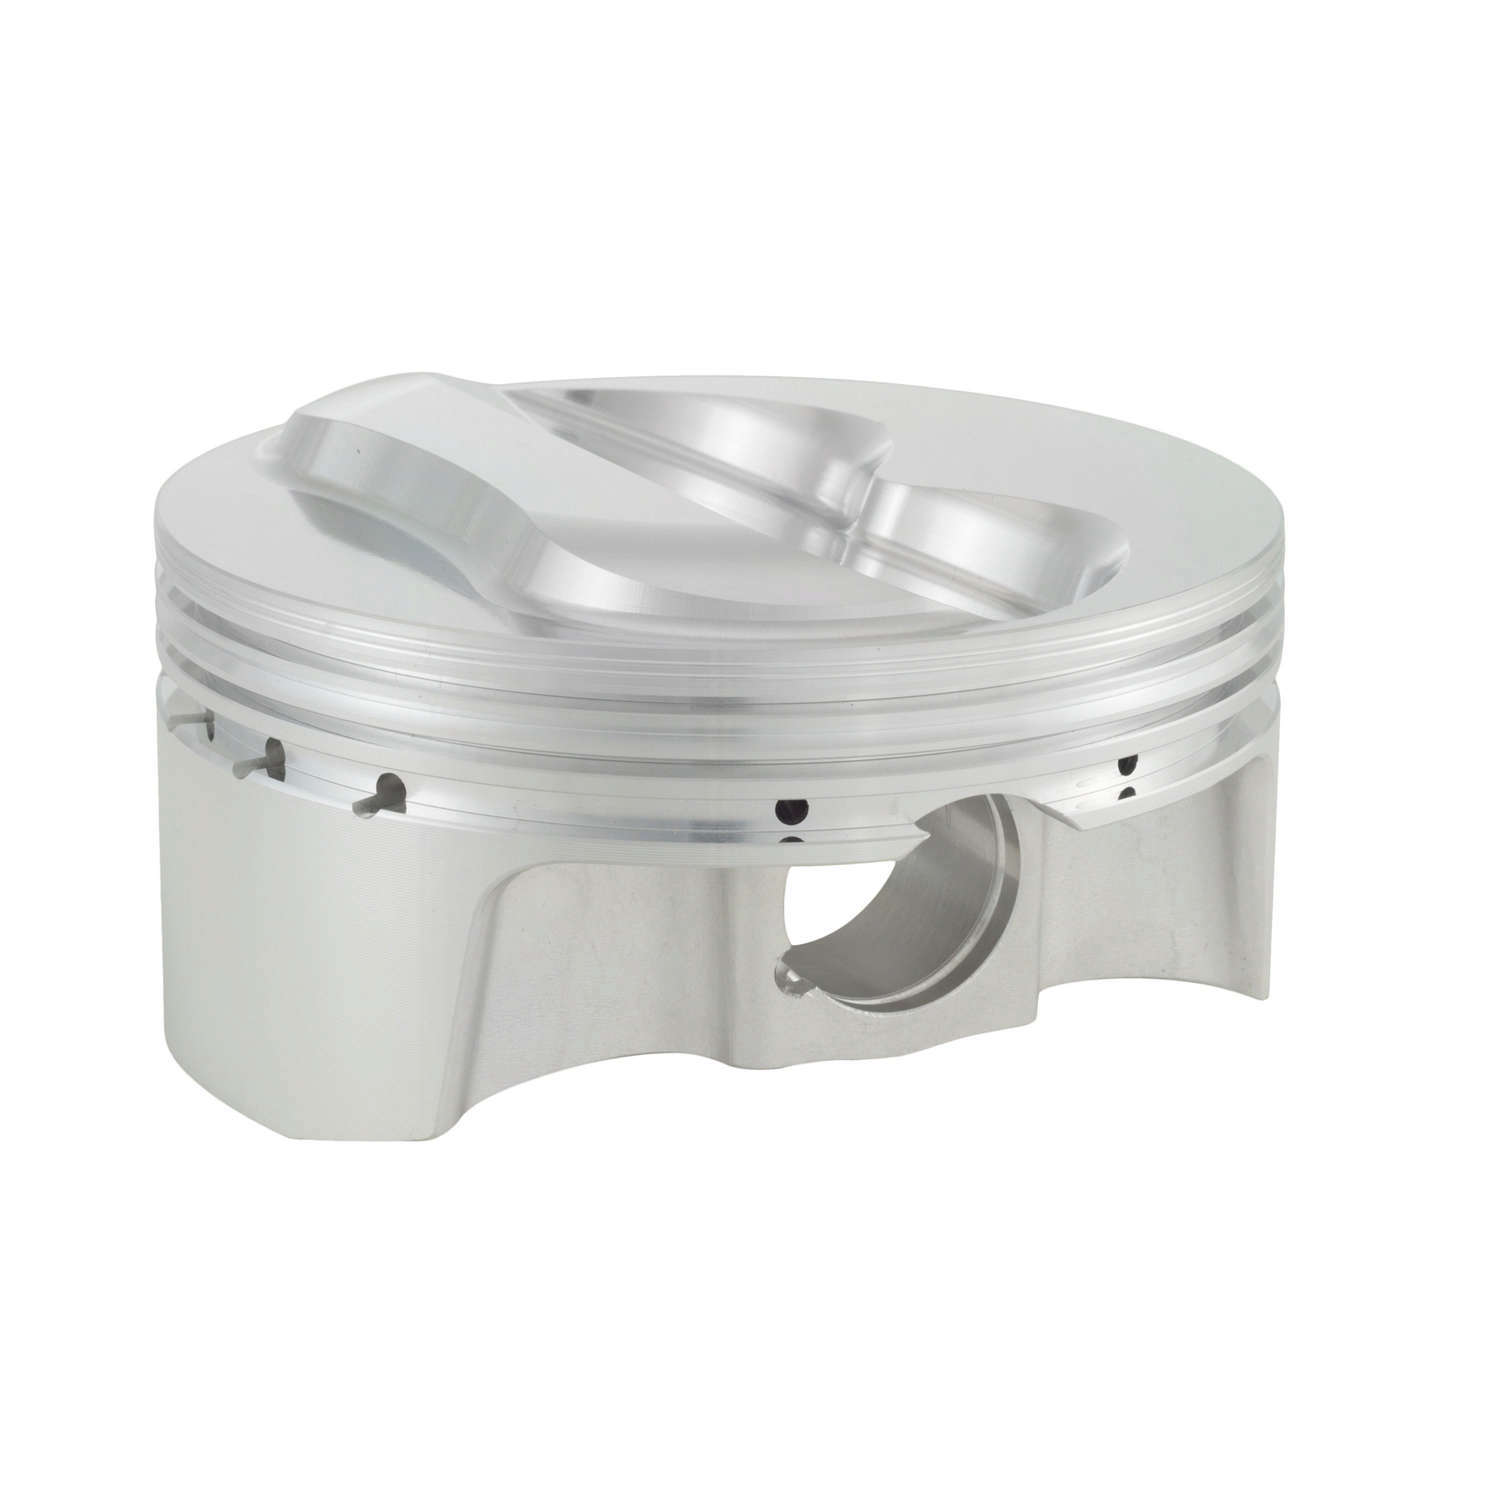 Bullet Pistons BC1200-030-8 Piston and Ring, Forged, 4.155 in Bore, 1.5 x 1.5 x 3 mm Ring Grooves, Plus 5.1 cc, Small Block Chevy, Kit